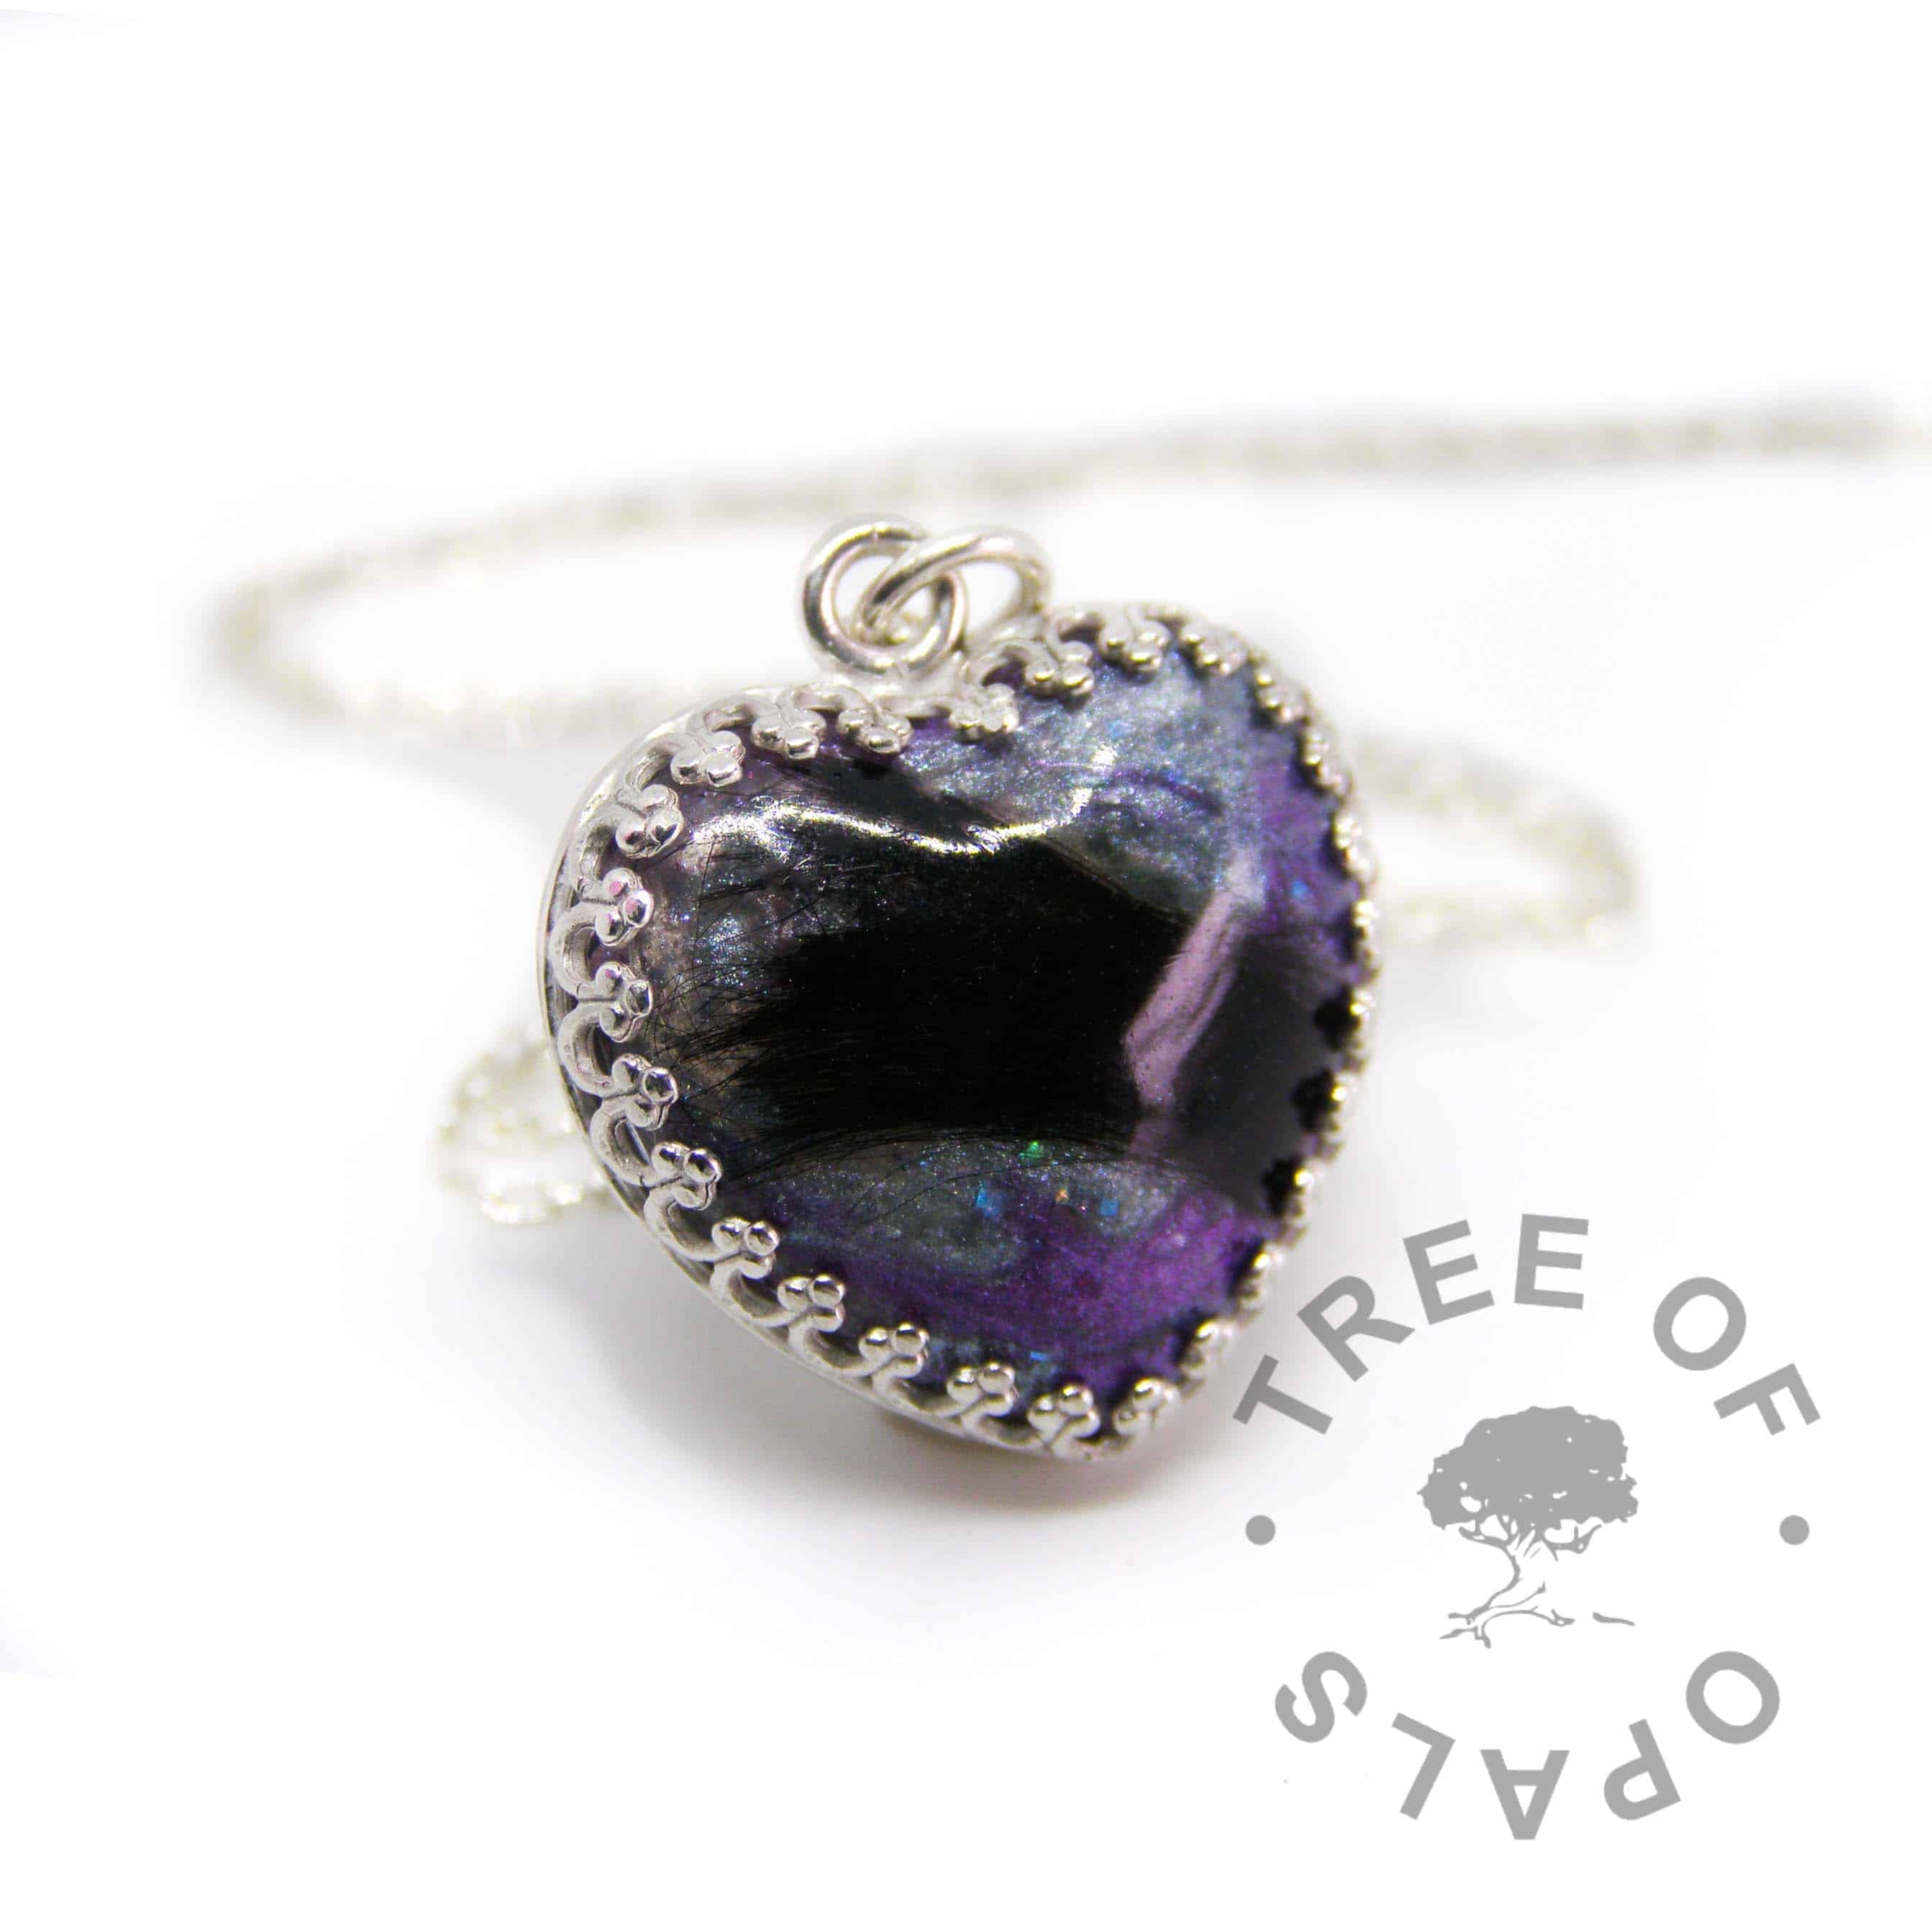 "lock of hair heart necklace mermaid teal and black fur, with a little deep purple colour. Solid sterling silver with a 20"" fine weight chain (50cm)"